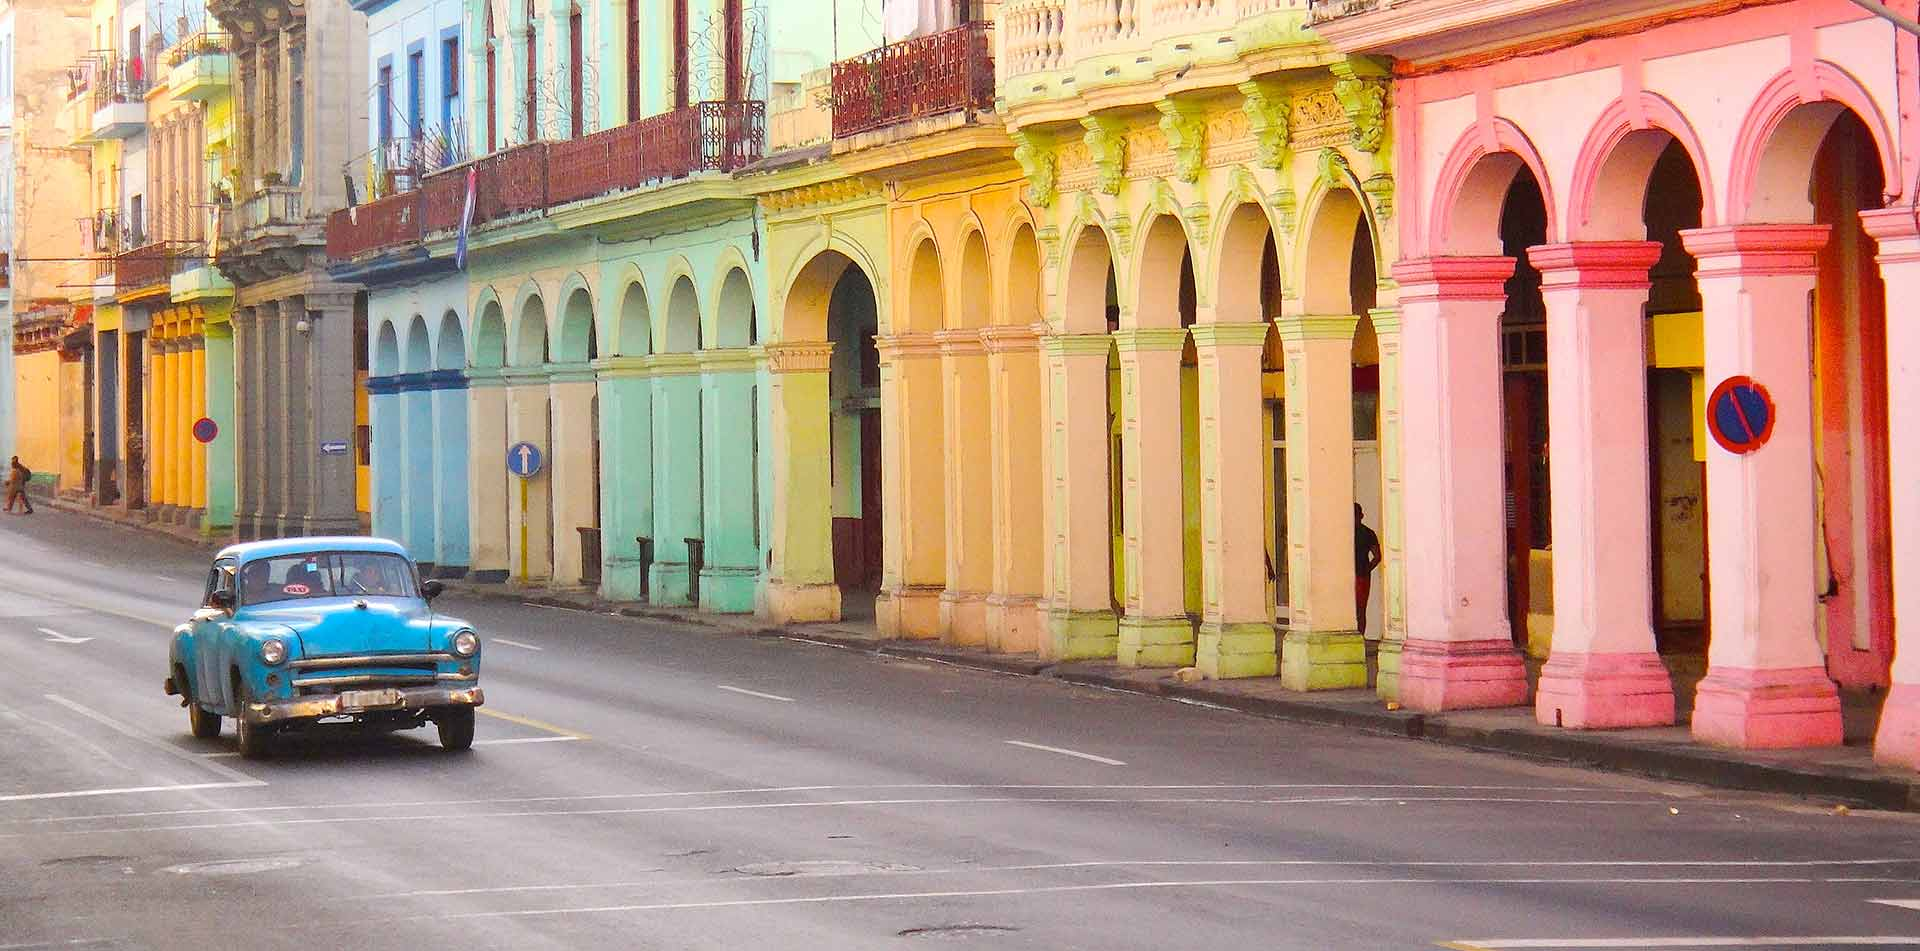 North America Caribbean Cuba Havana local street pastel color buildings classic car - luxury vacation destinations